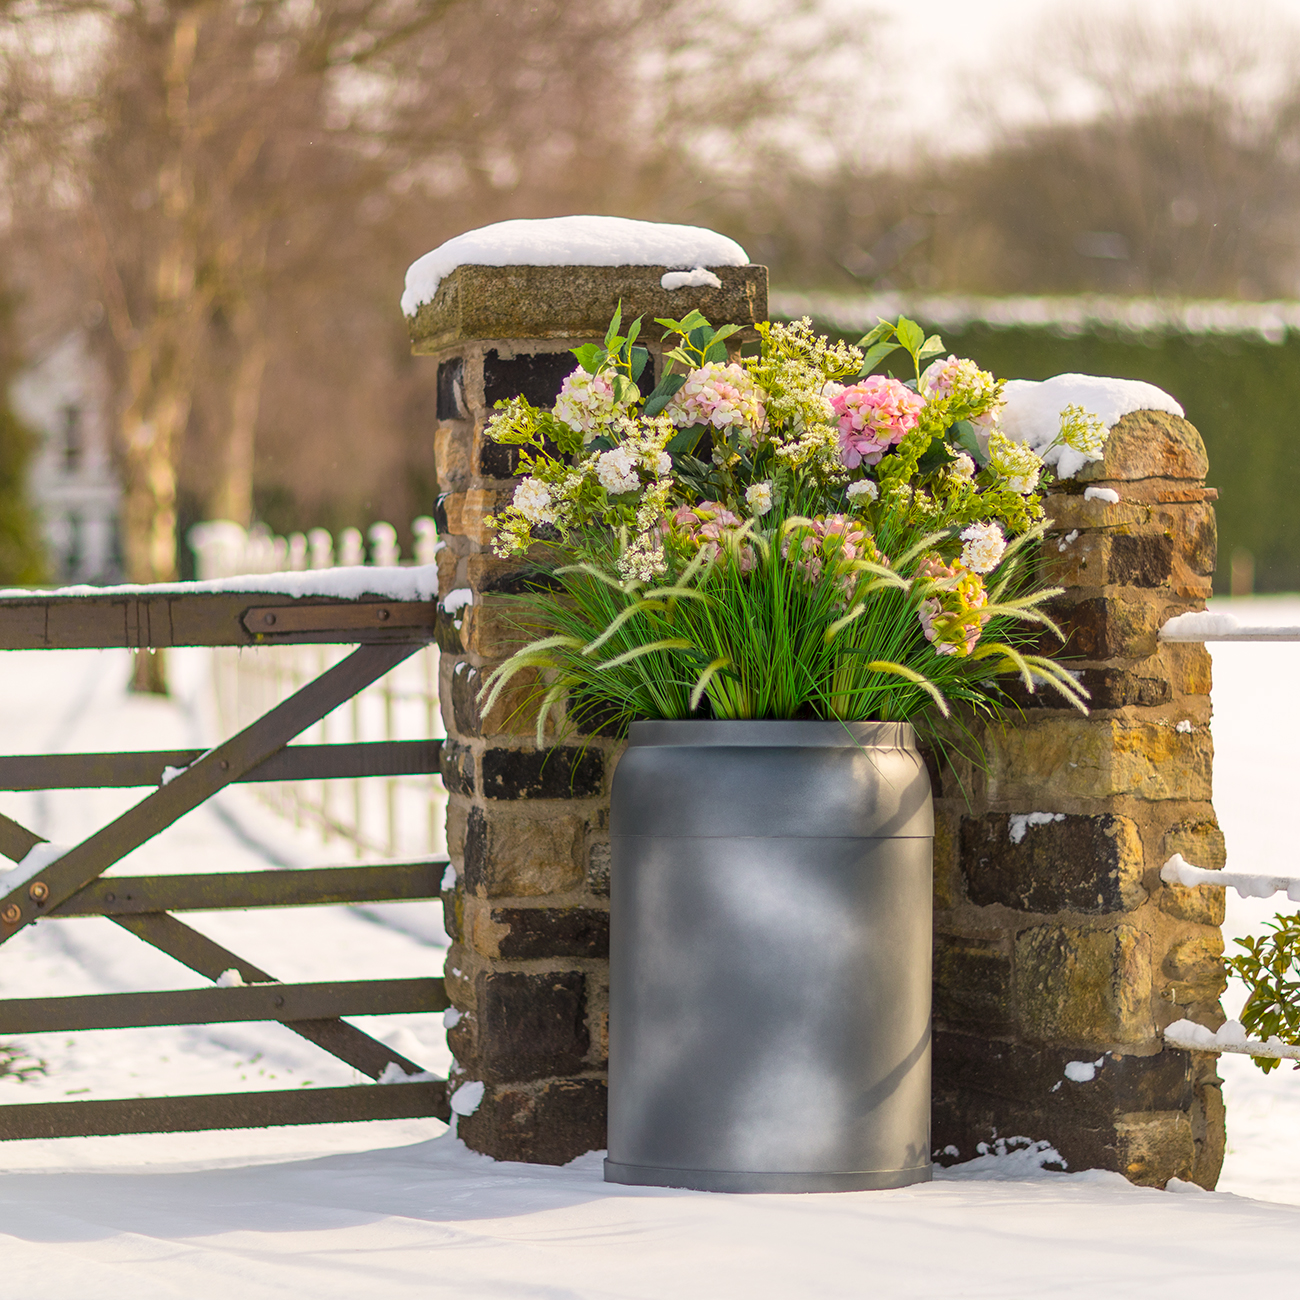 Milkkans-large-planter-by-Europlanters